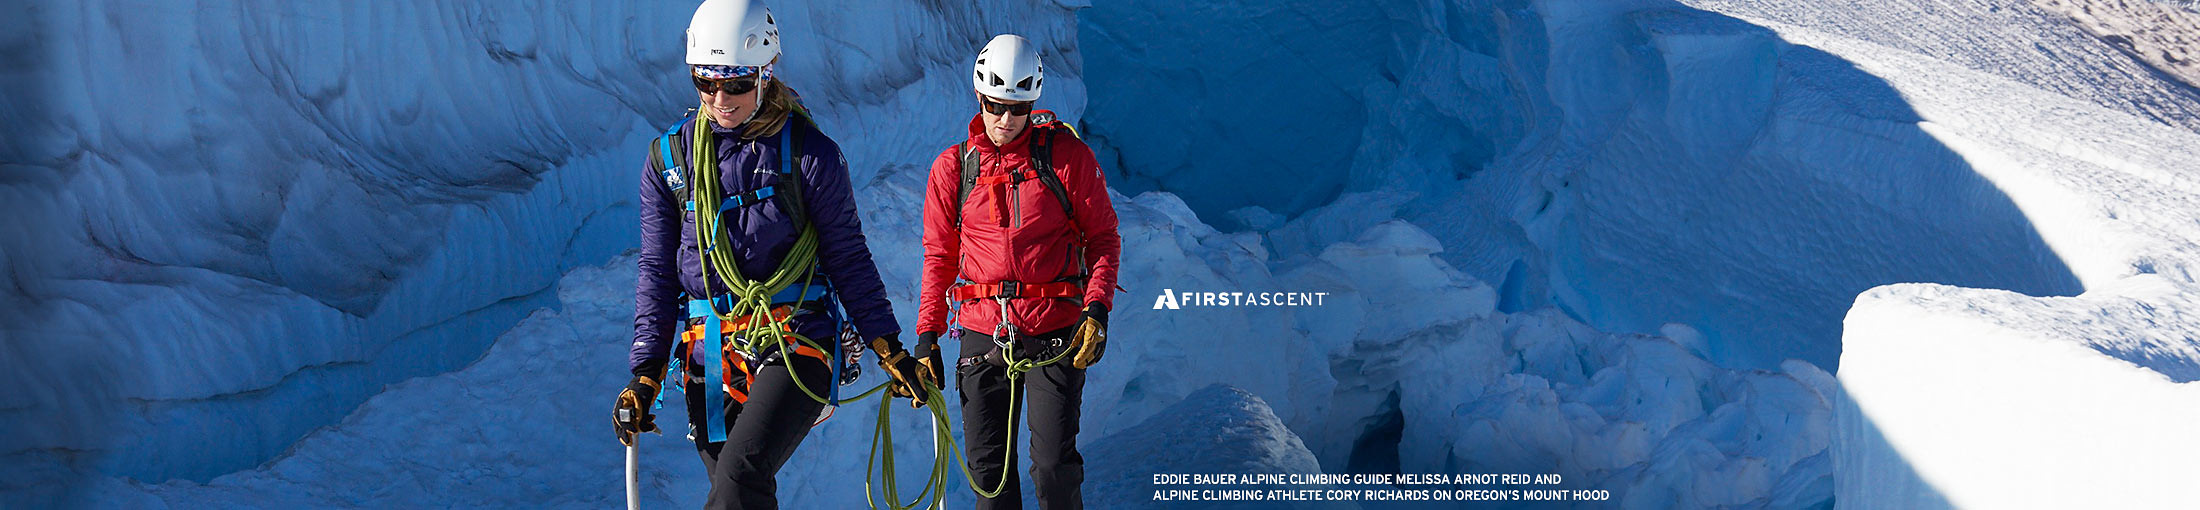 Eddie Bauer alpine climbing guide Melissa Arnot Reid and  alpine climbing athlete Cory Richards on Oregon's Mount Hood